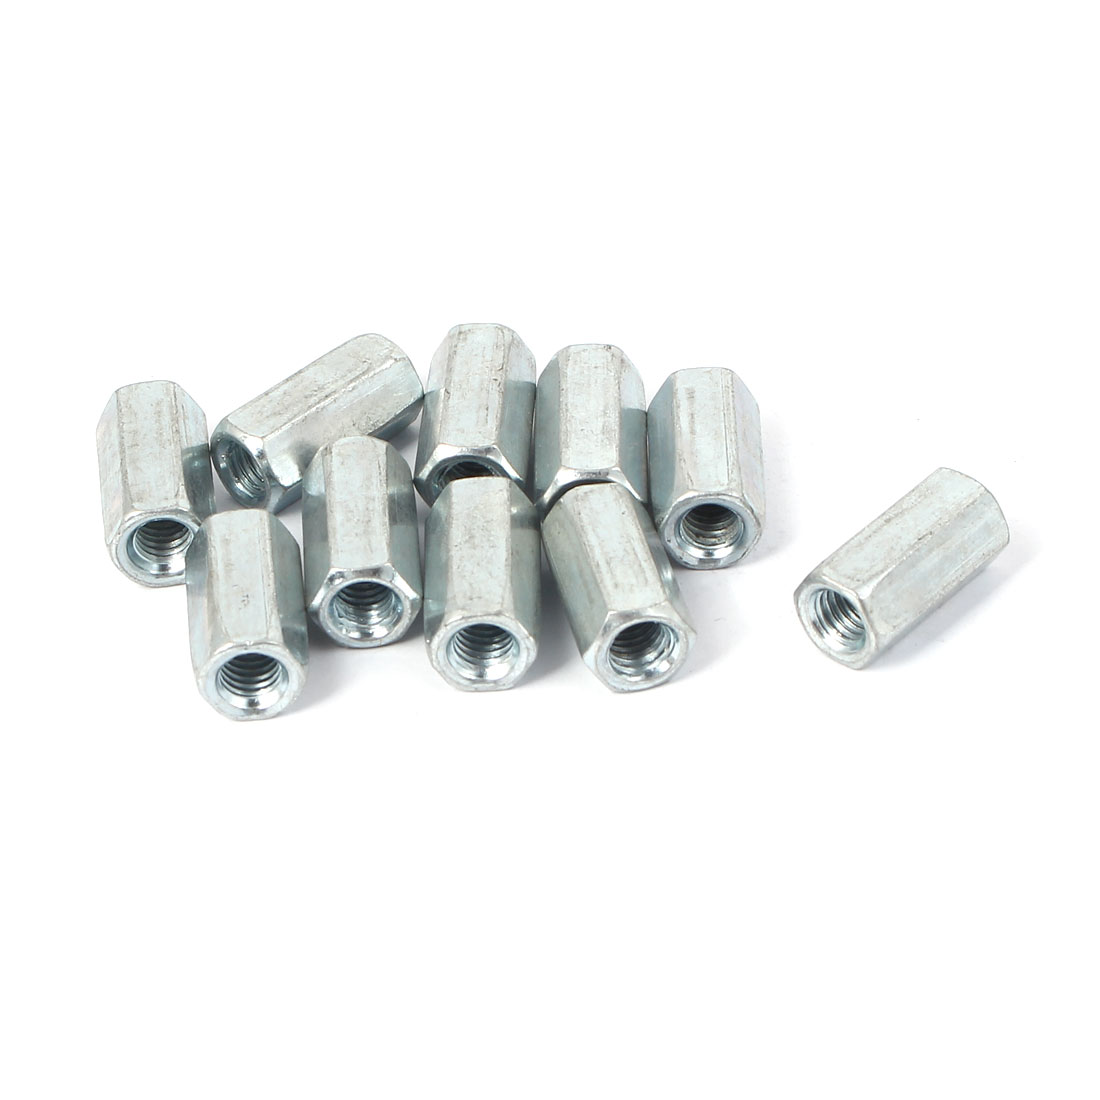 M6 Female Thread Straight Hex Rod Coupling Connector Nuts 10 Pcs